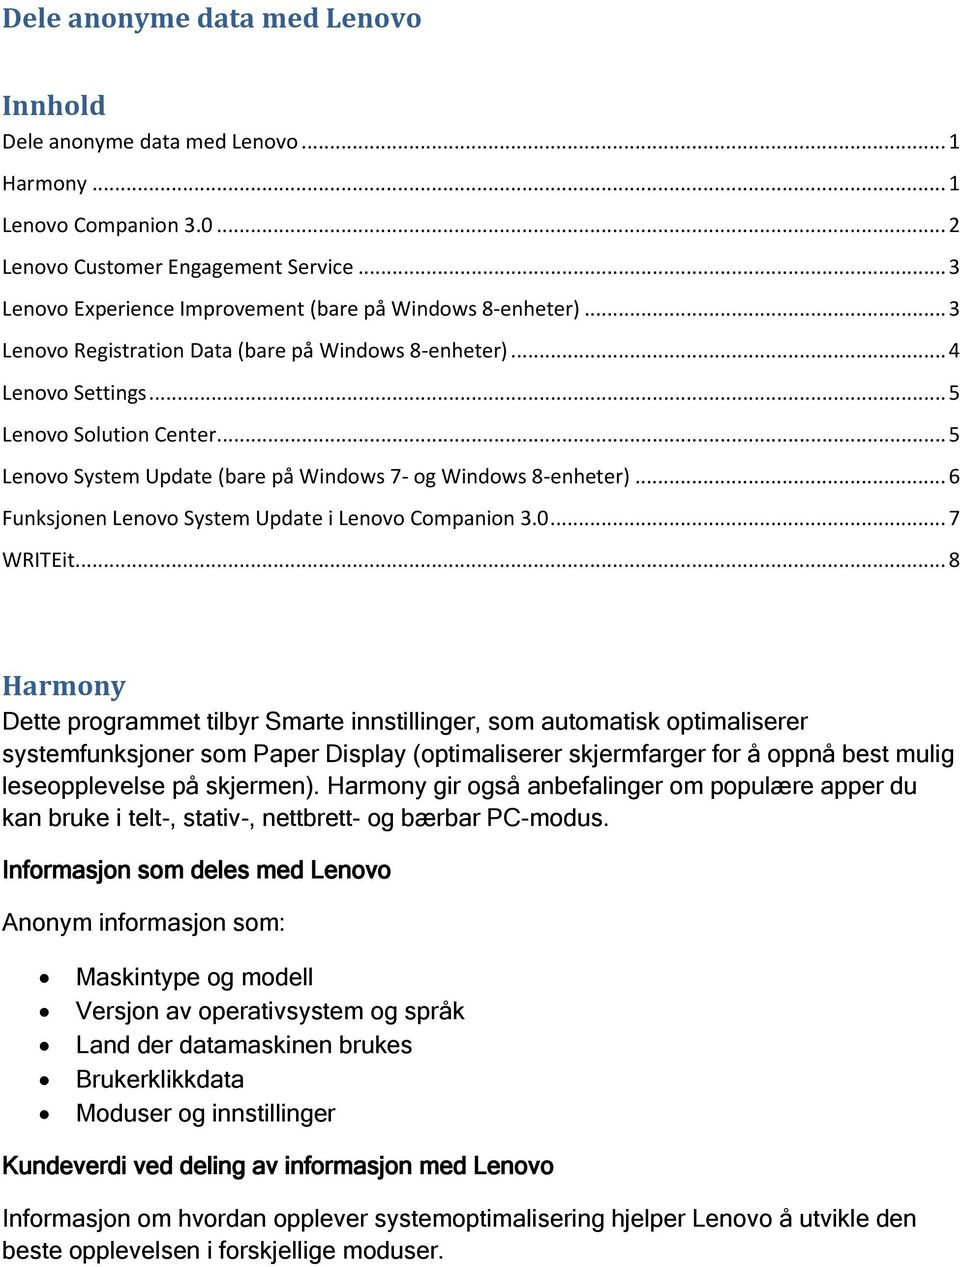 .. 5 Lenovo System Update (bare på Windows 7- og Windows 8-enheter)... 6 Funksjonen Lenovo System Update i Lenovo Companion 3.0... 7 WRITEit.